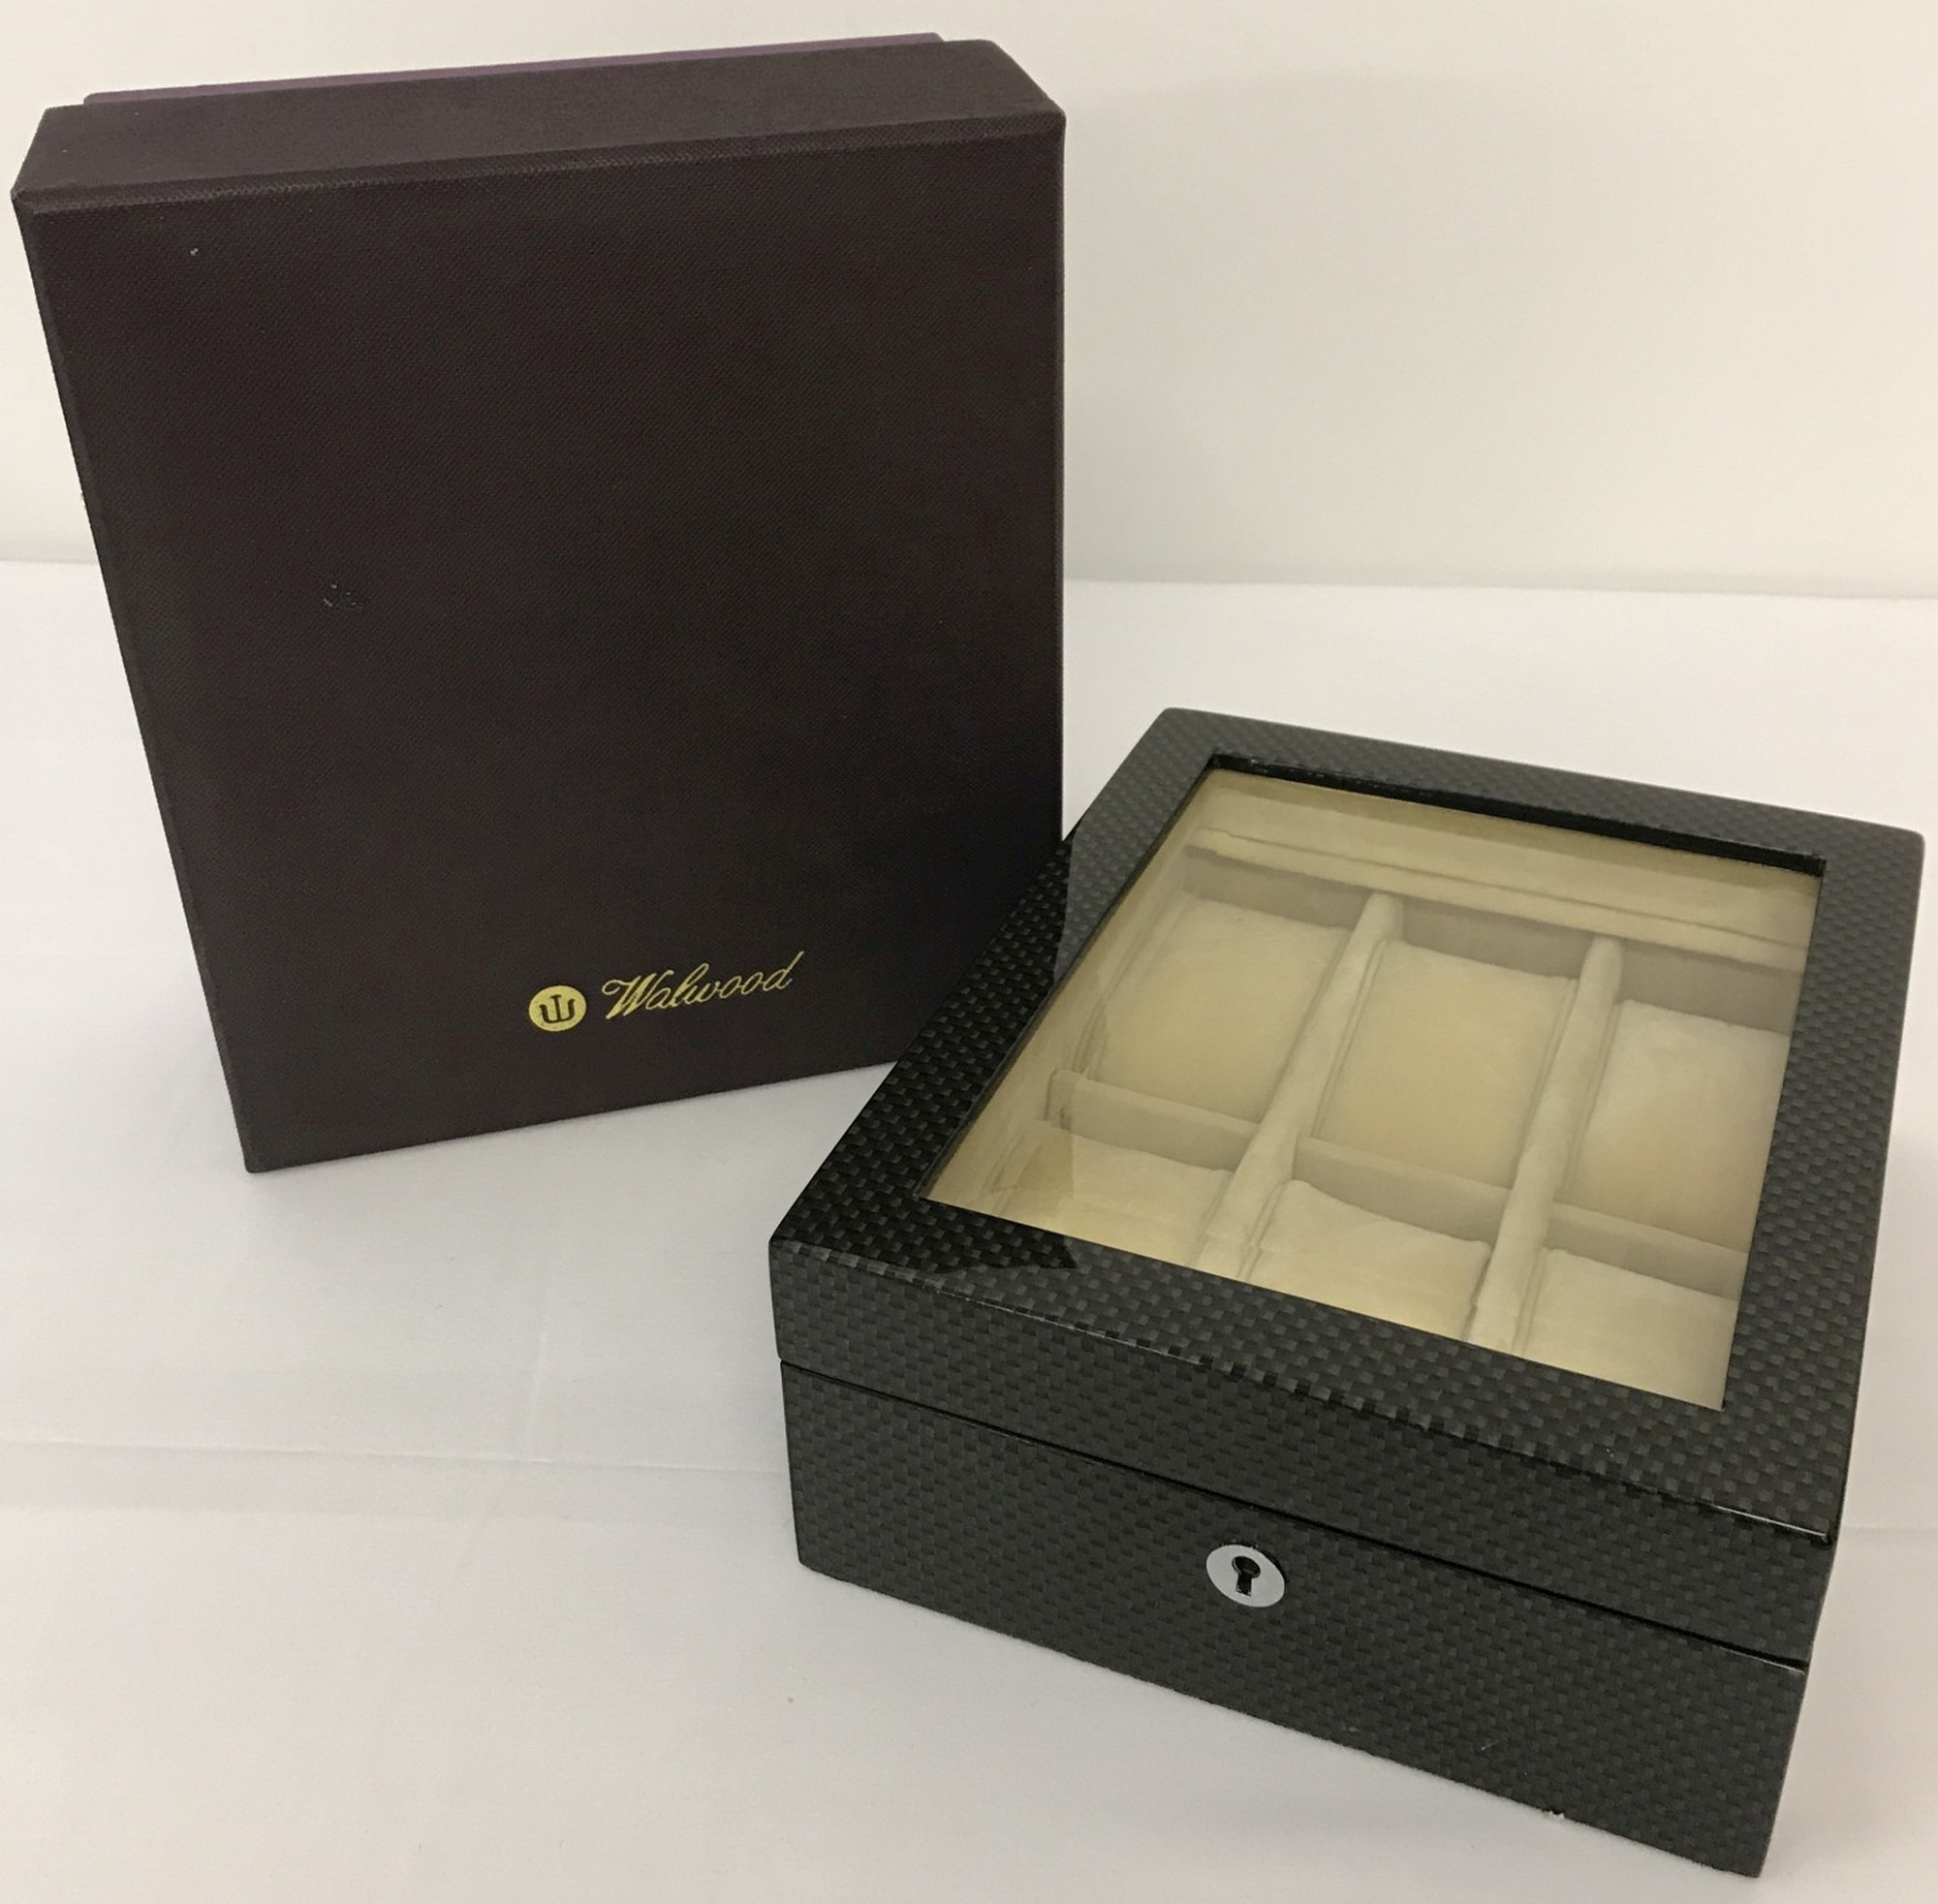 Lot 64 - A new boxed Walwood watch box in a geometric design and high gloss finish.